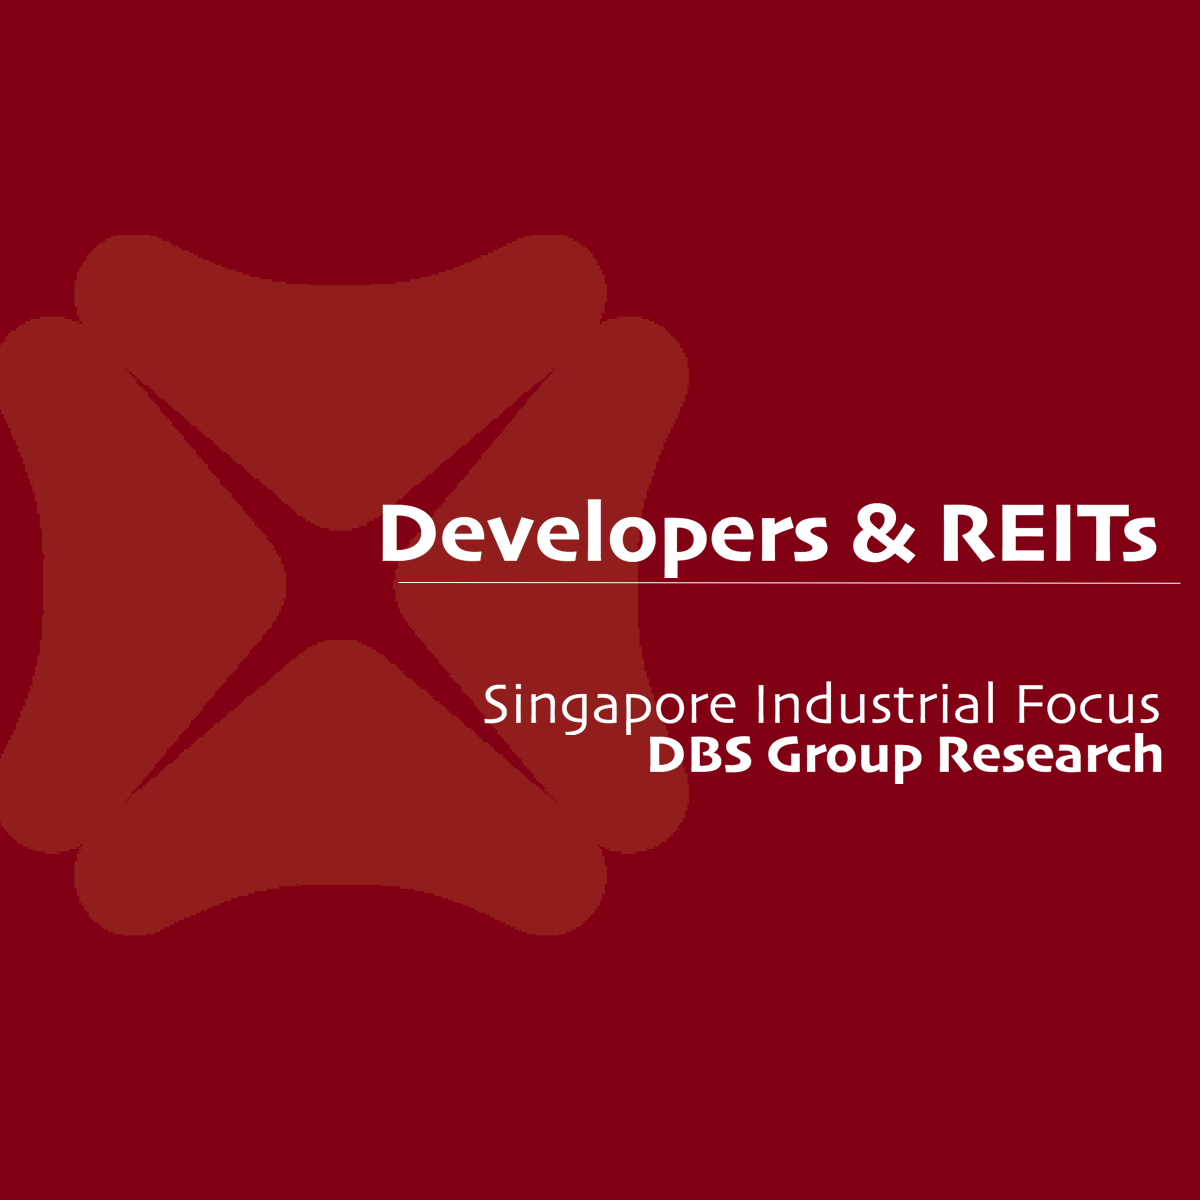 Singapore Developers & REITs - DBS Vickers 2017-01-06: Rocky Road, Take me home